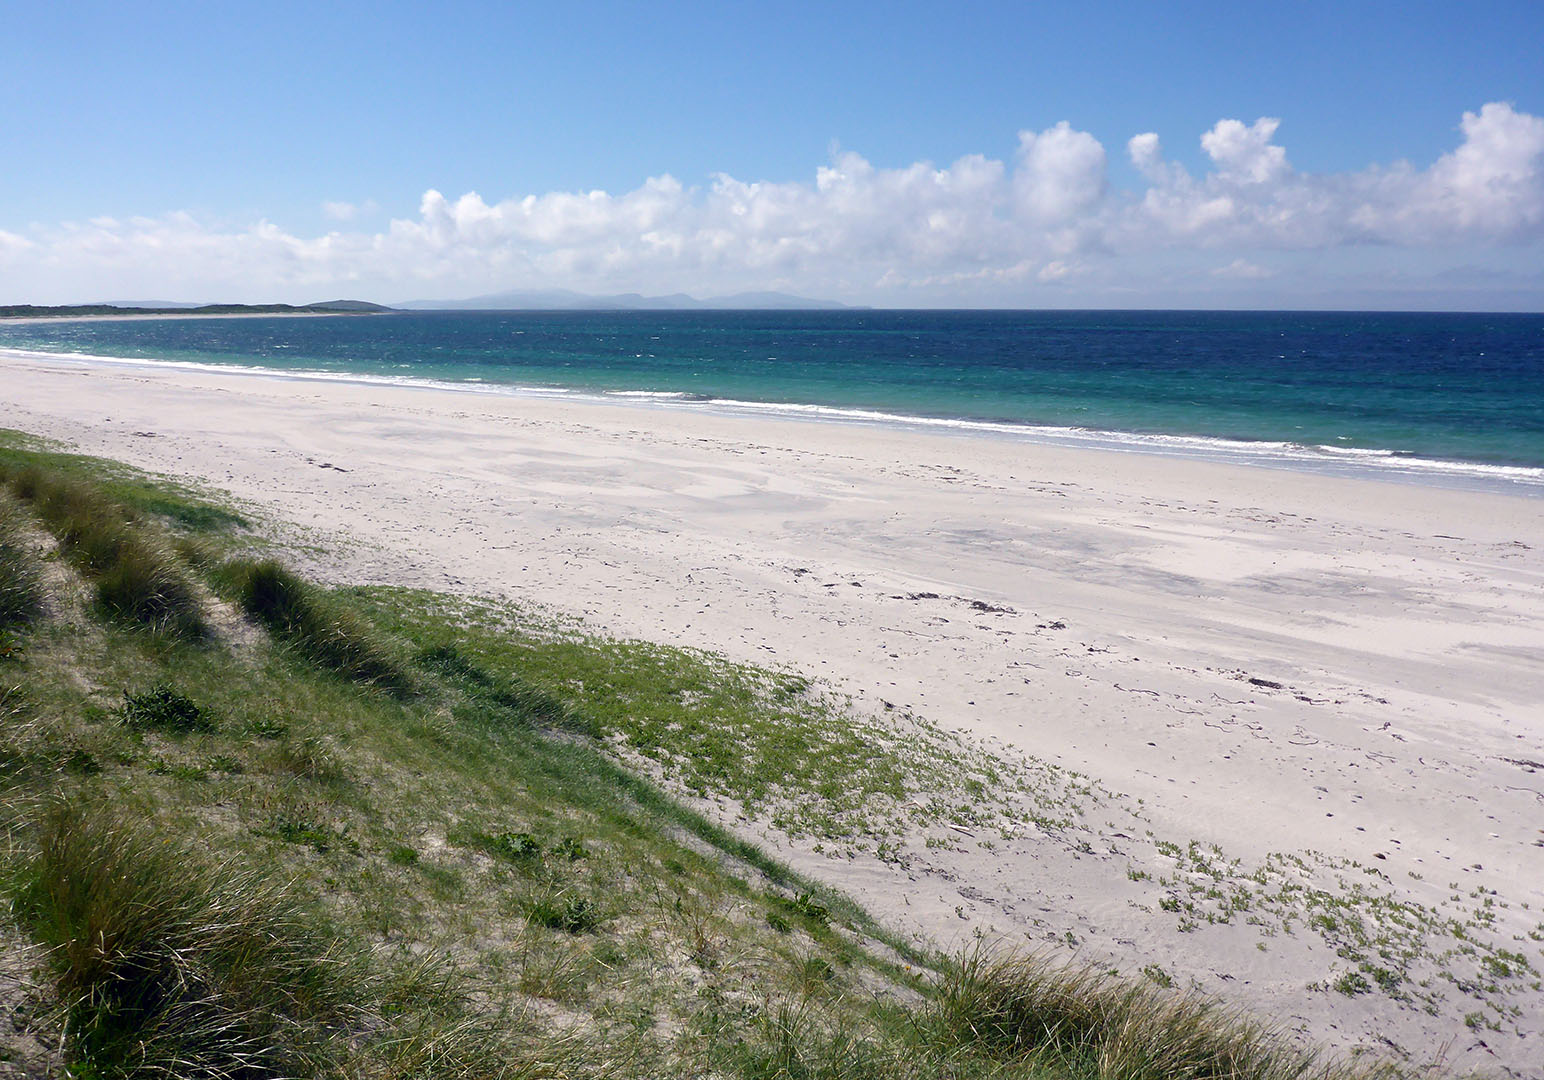 4 Beach at Daliburgh, Barra in distance